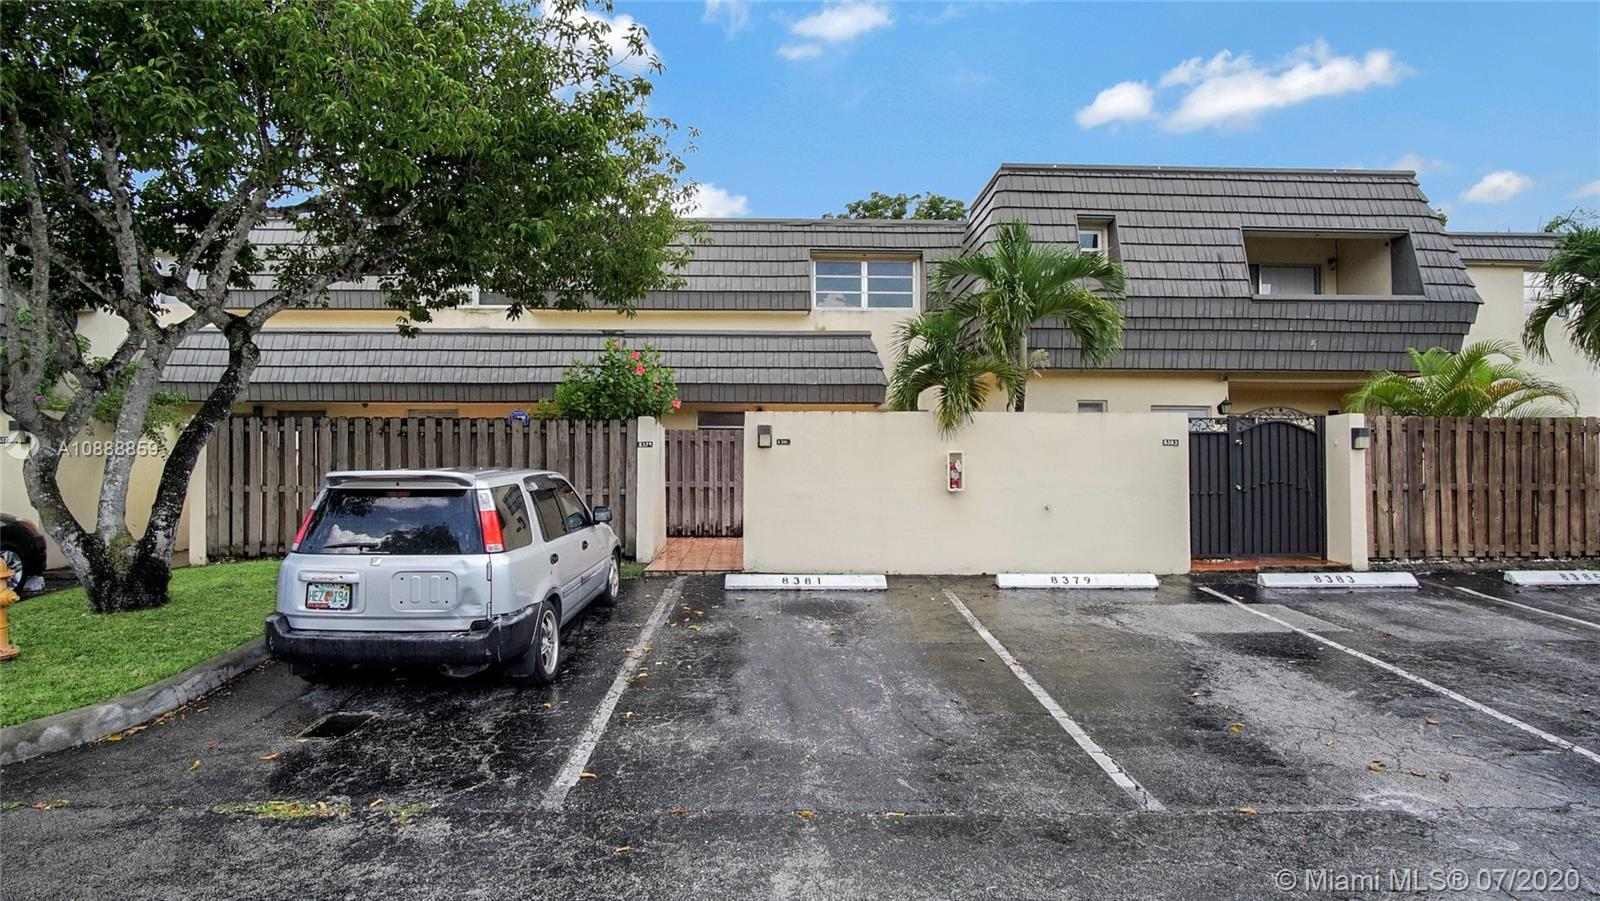 8381 SW 137th Ave #8381 For Sale A10888859, FL